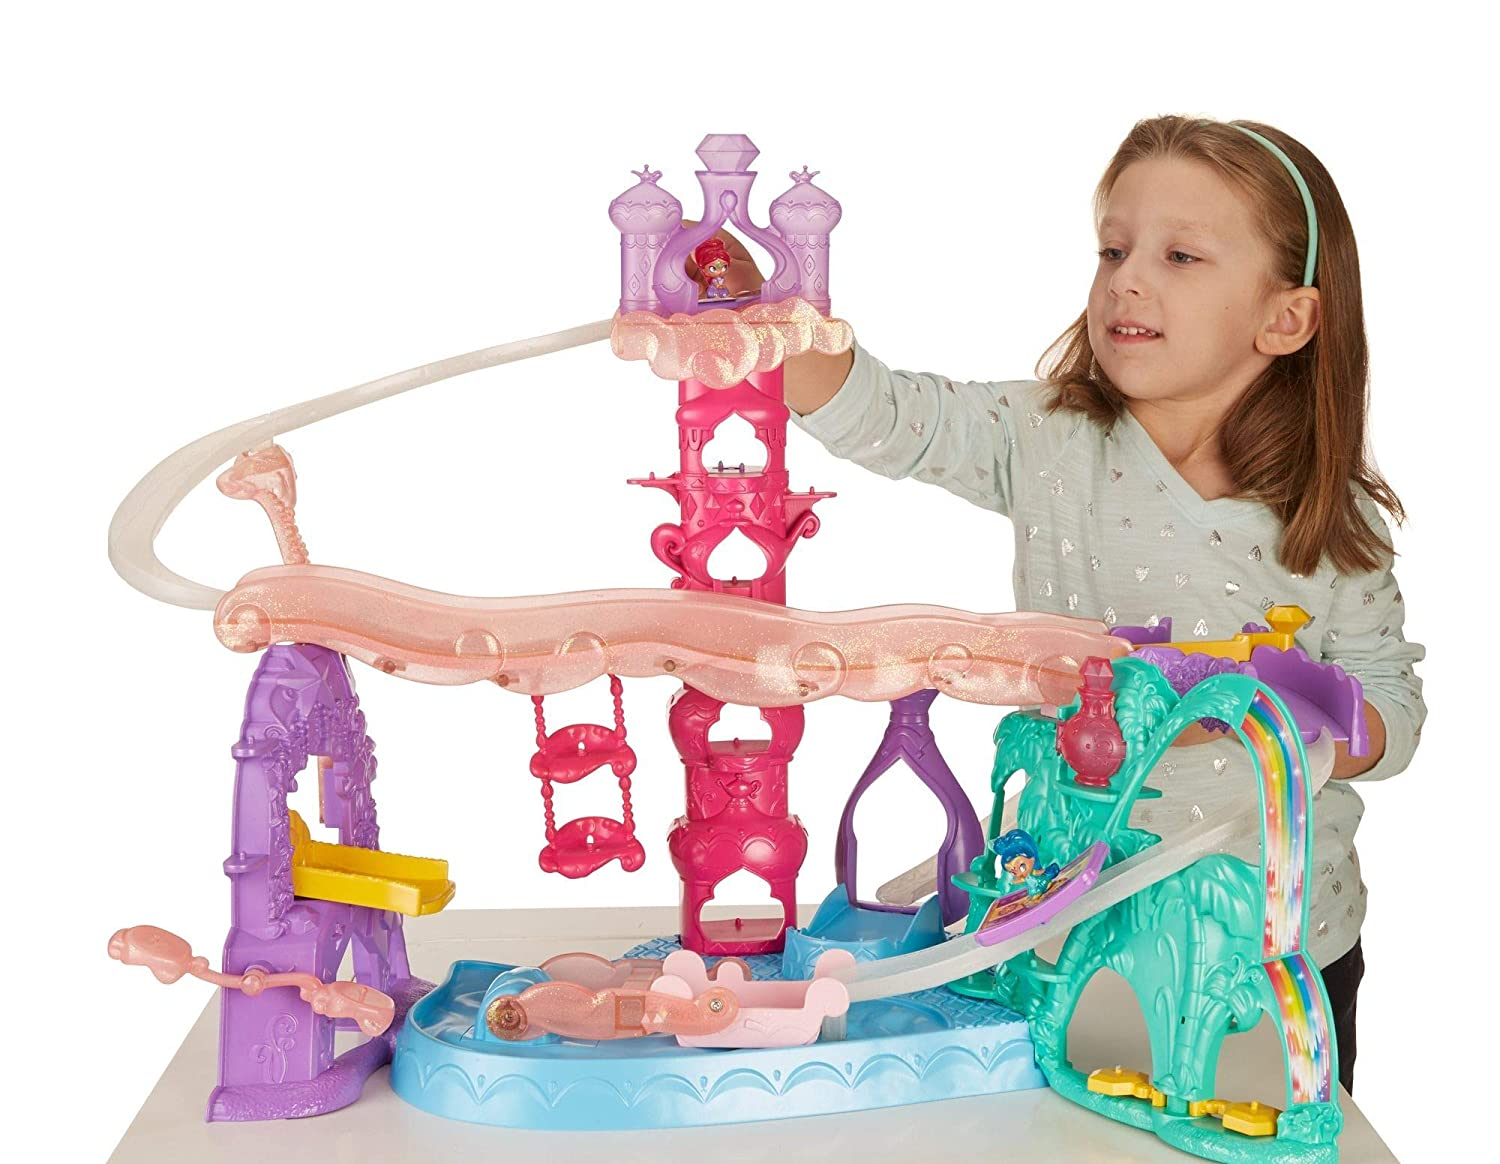 Nickelodeon Shimmer and Shine, Teenie Genies Magic Carpet Adventure